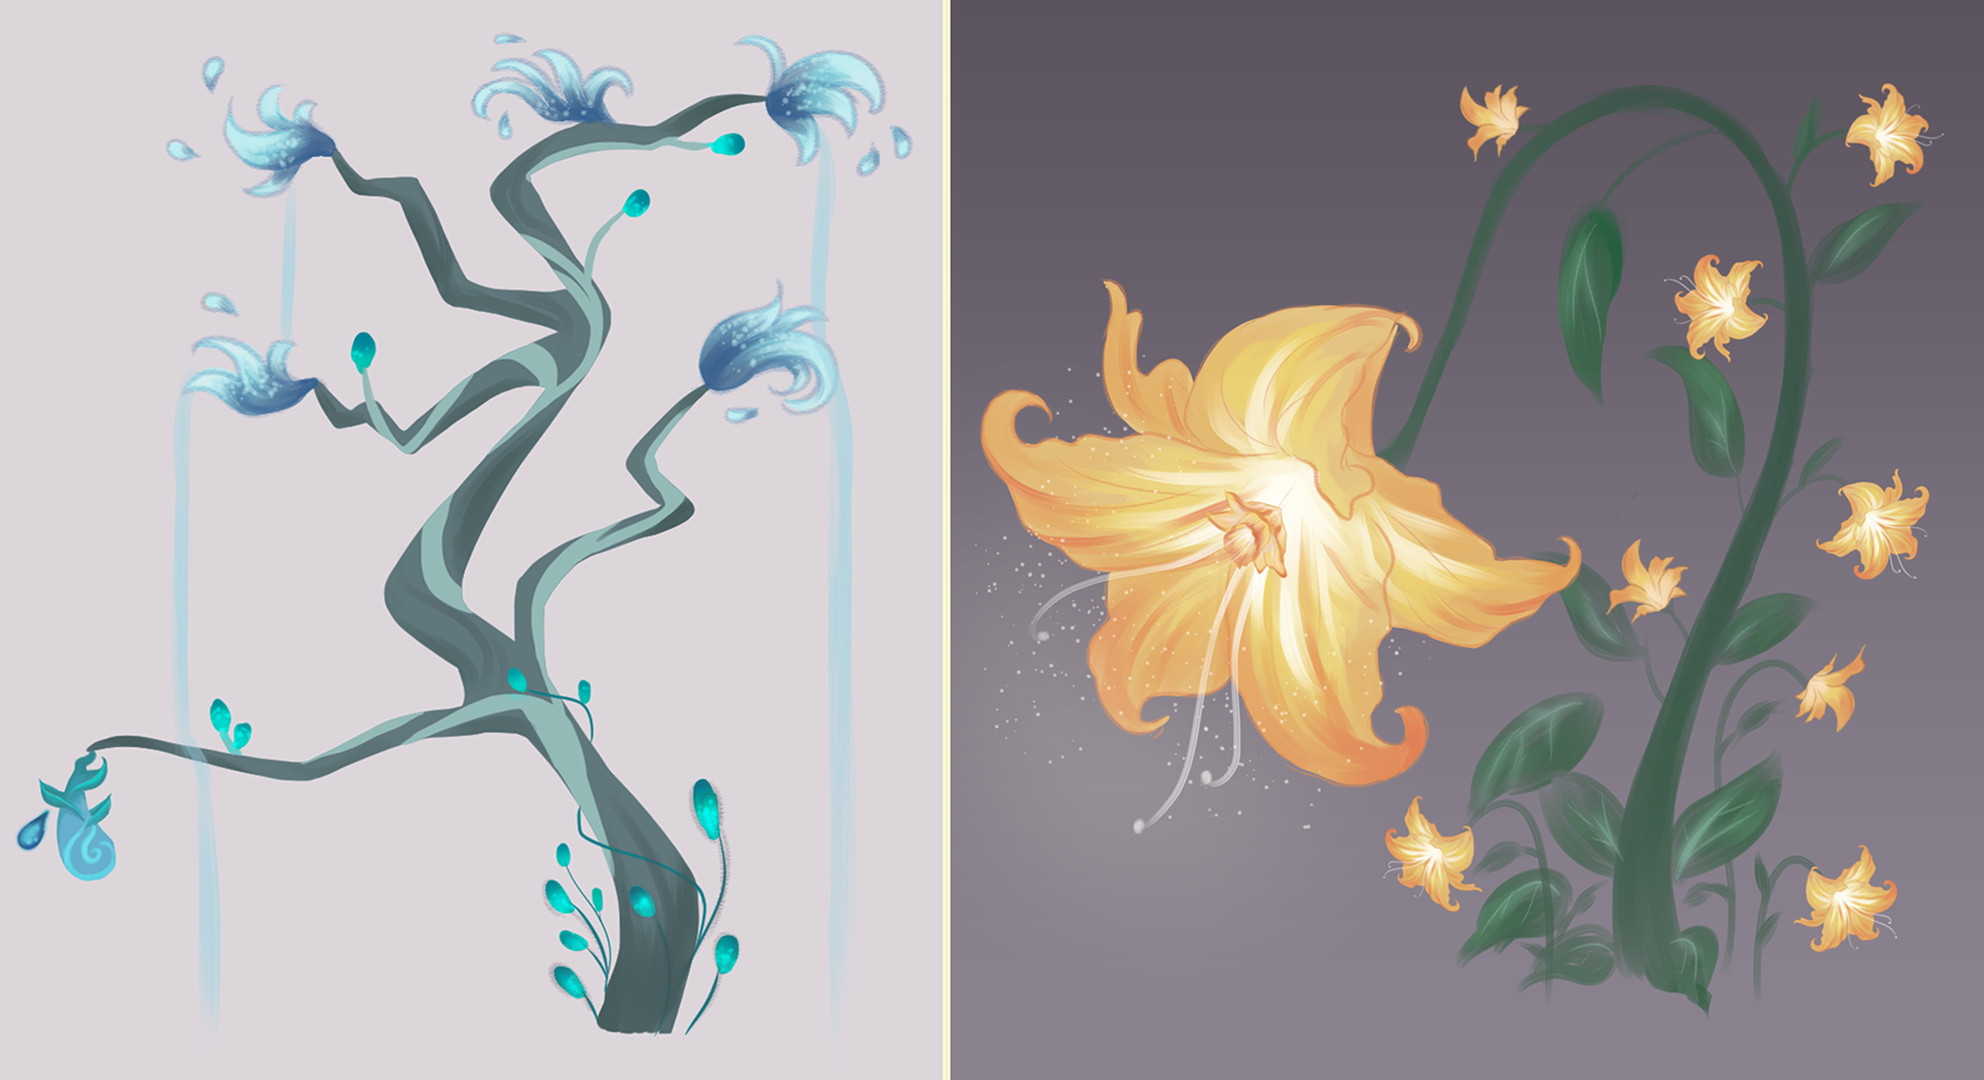 Final concept art that I did for the Water and Light Flora.